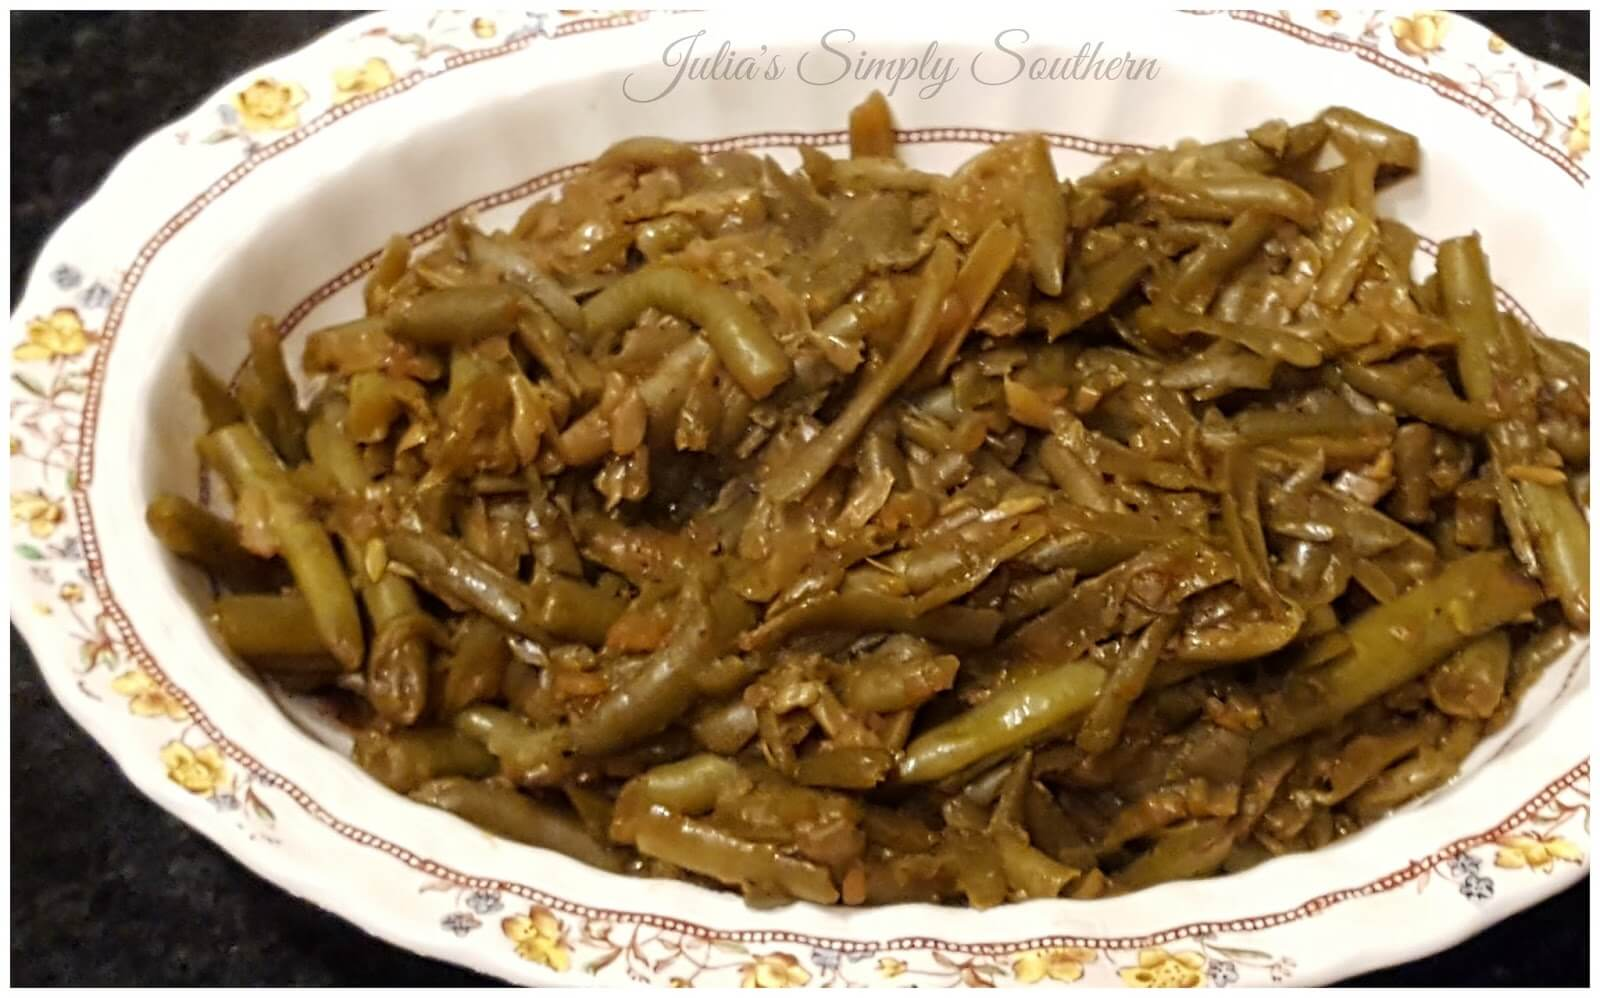 Side Dish of Soy Sauce Glazed Green Beans in a vintage serving dish